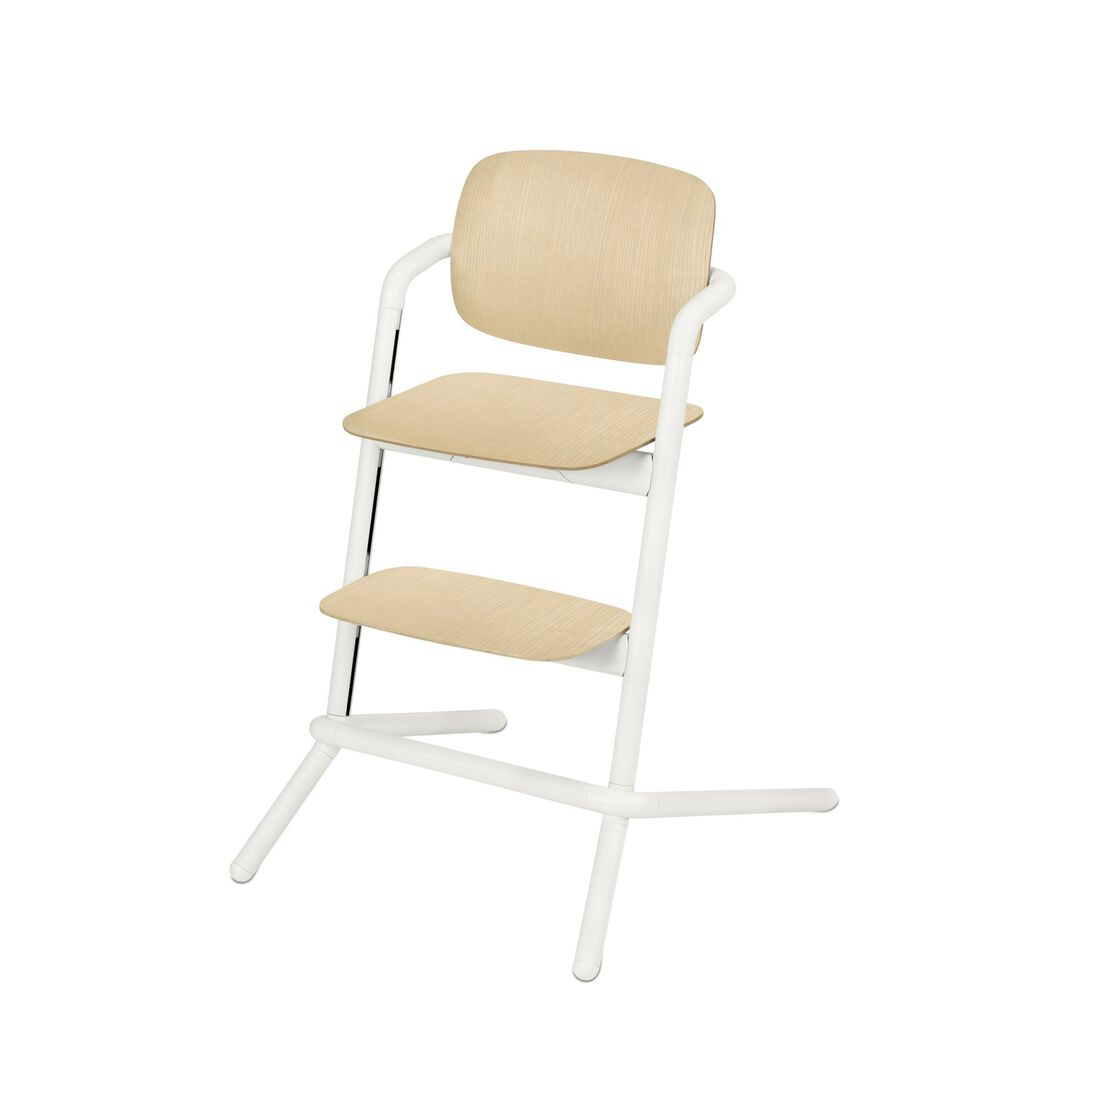 CYBEX Lemo Chair - Porcelaine White (Wood) in Porcelaine White (Wood) large image number 1